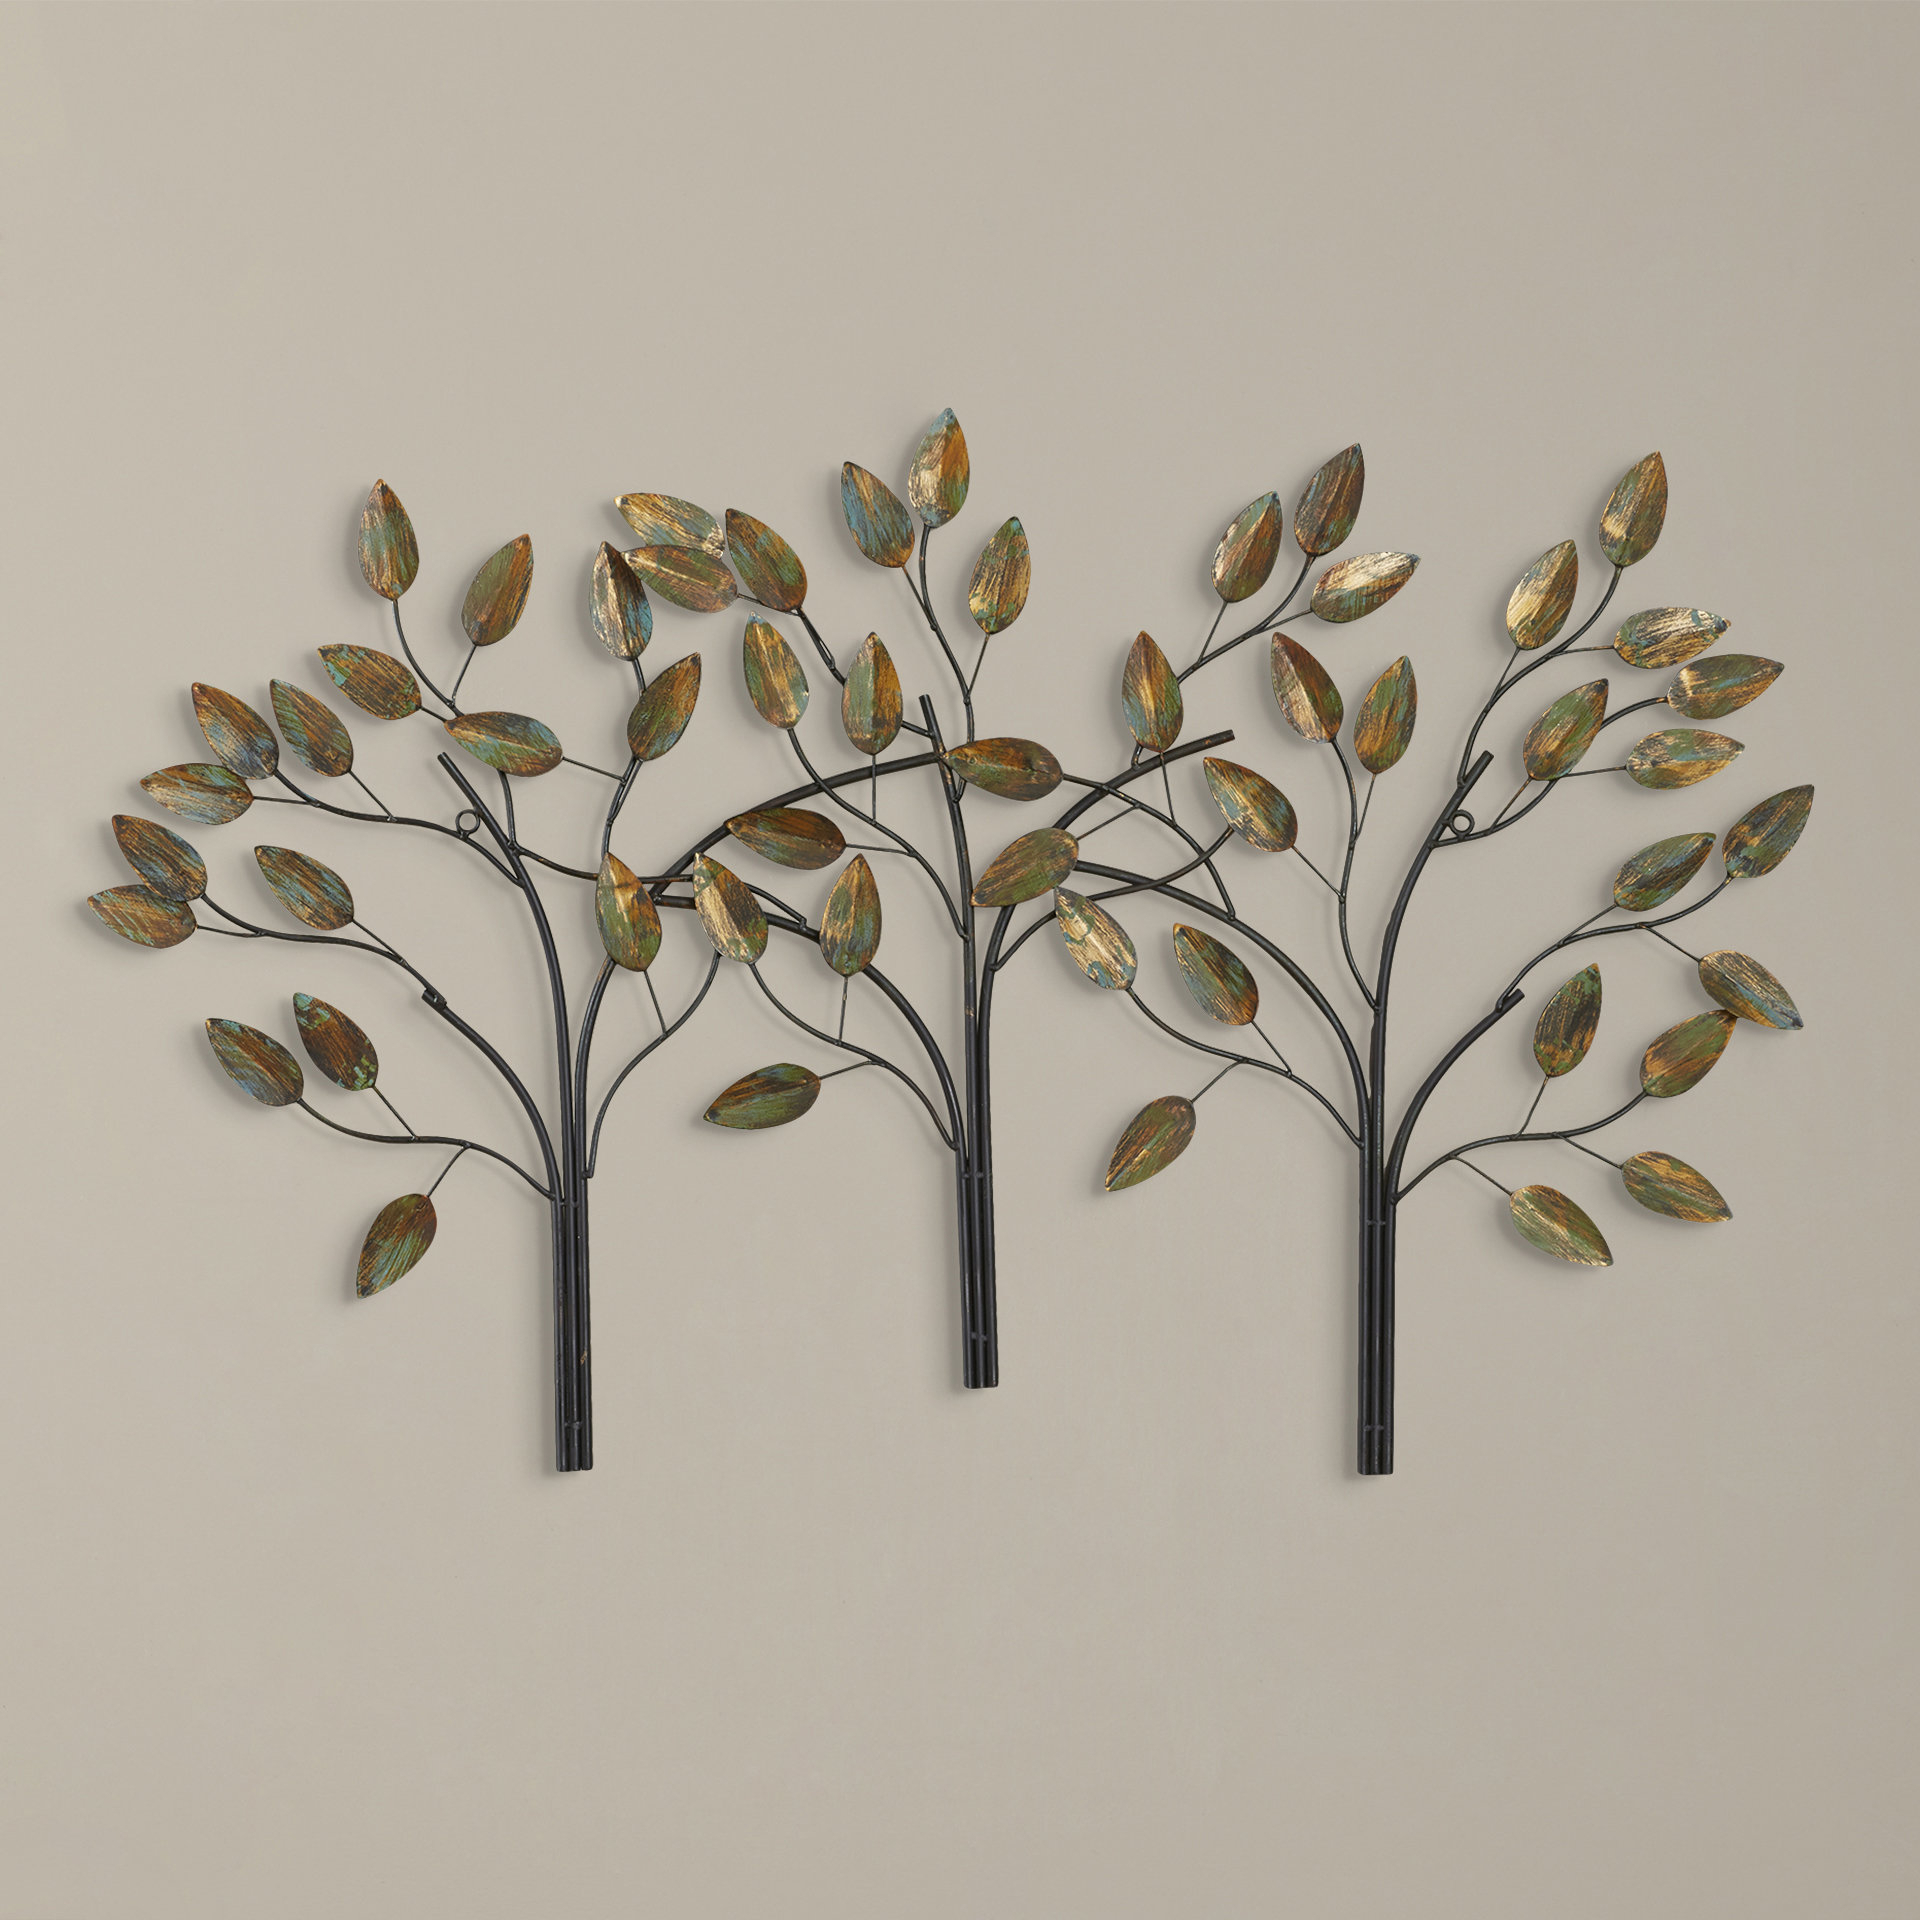 Wayfair Intended For Desford Leaf Wall Decor By Charlton Home (Gallery 1 of 20)